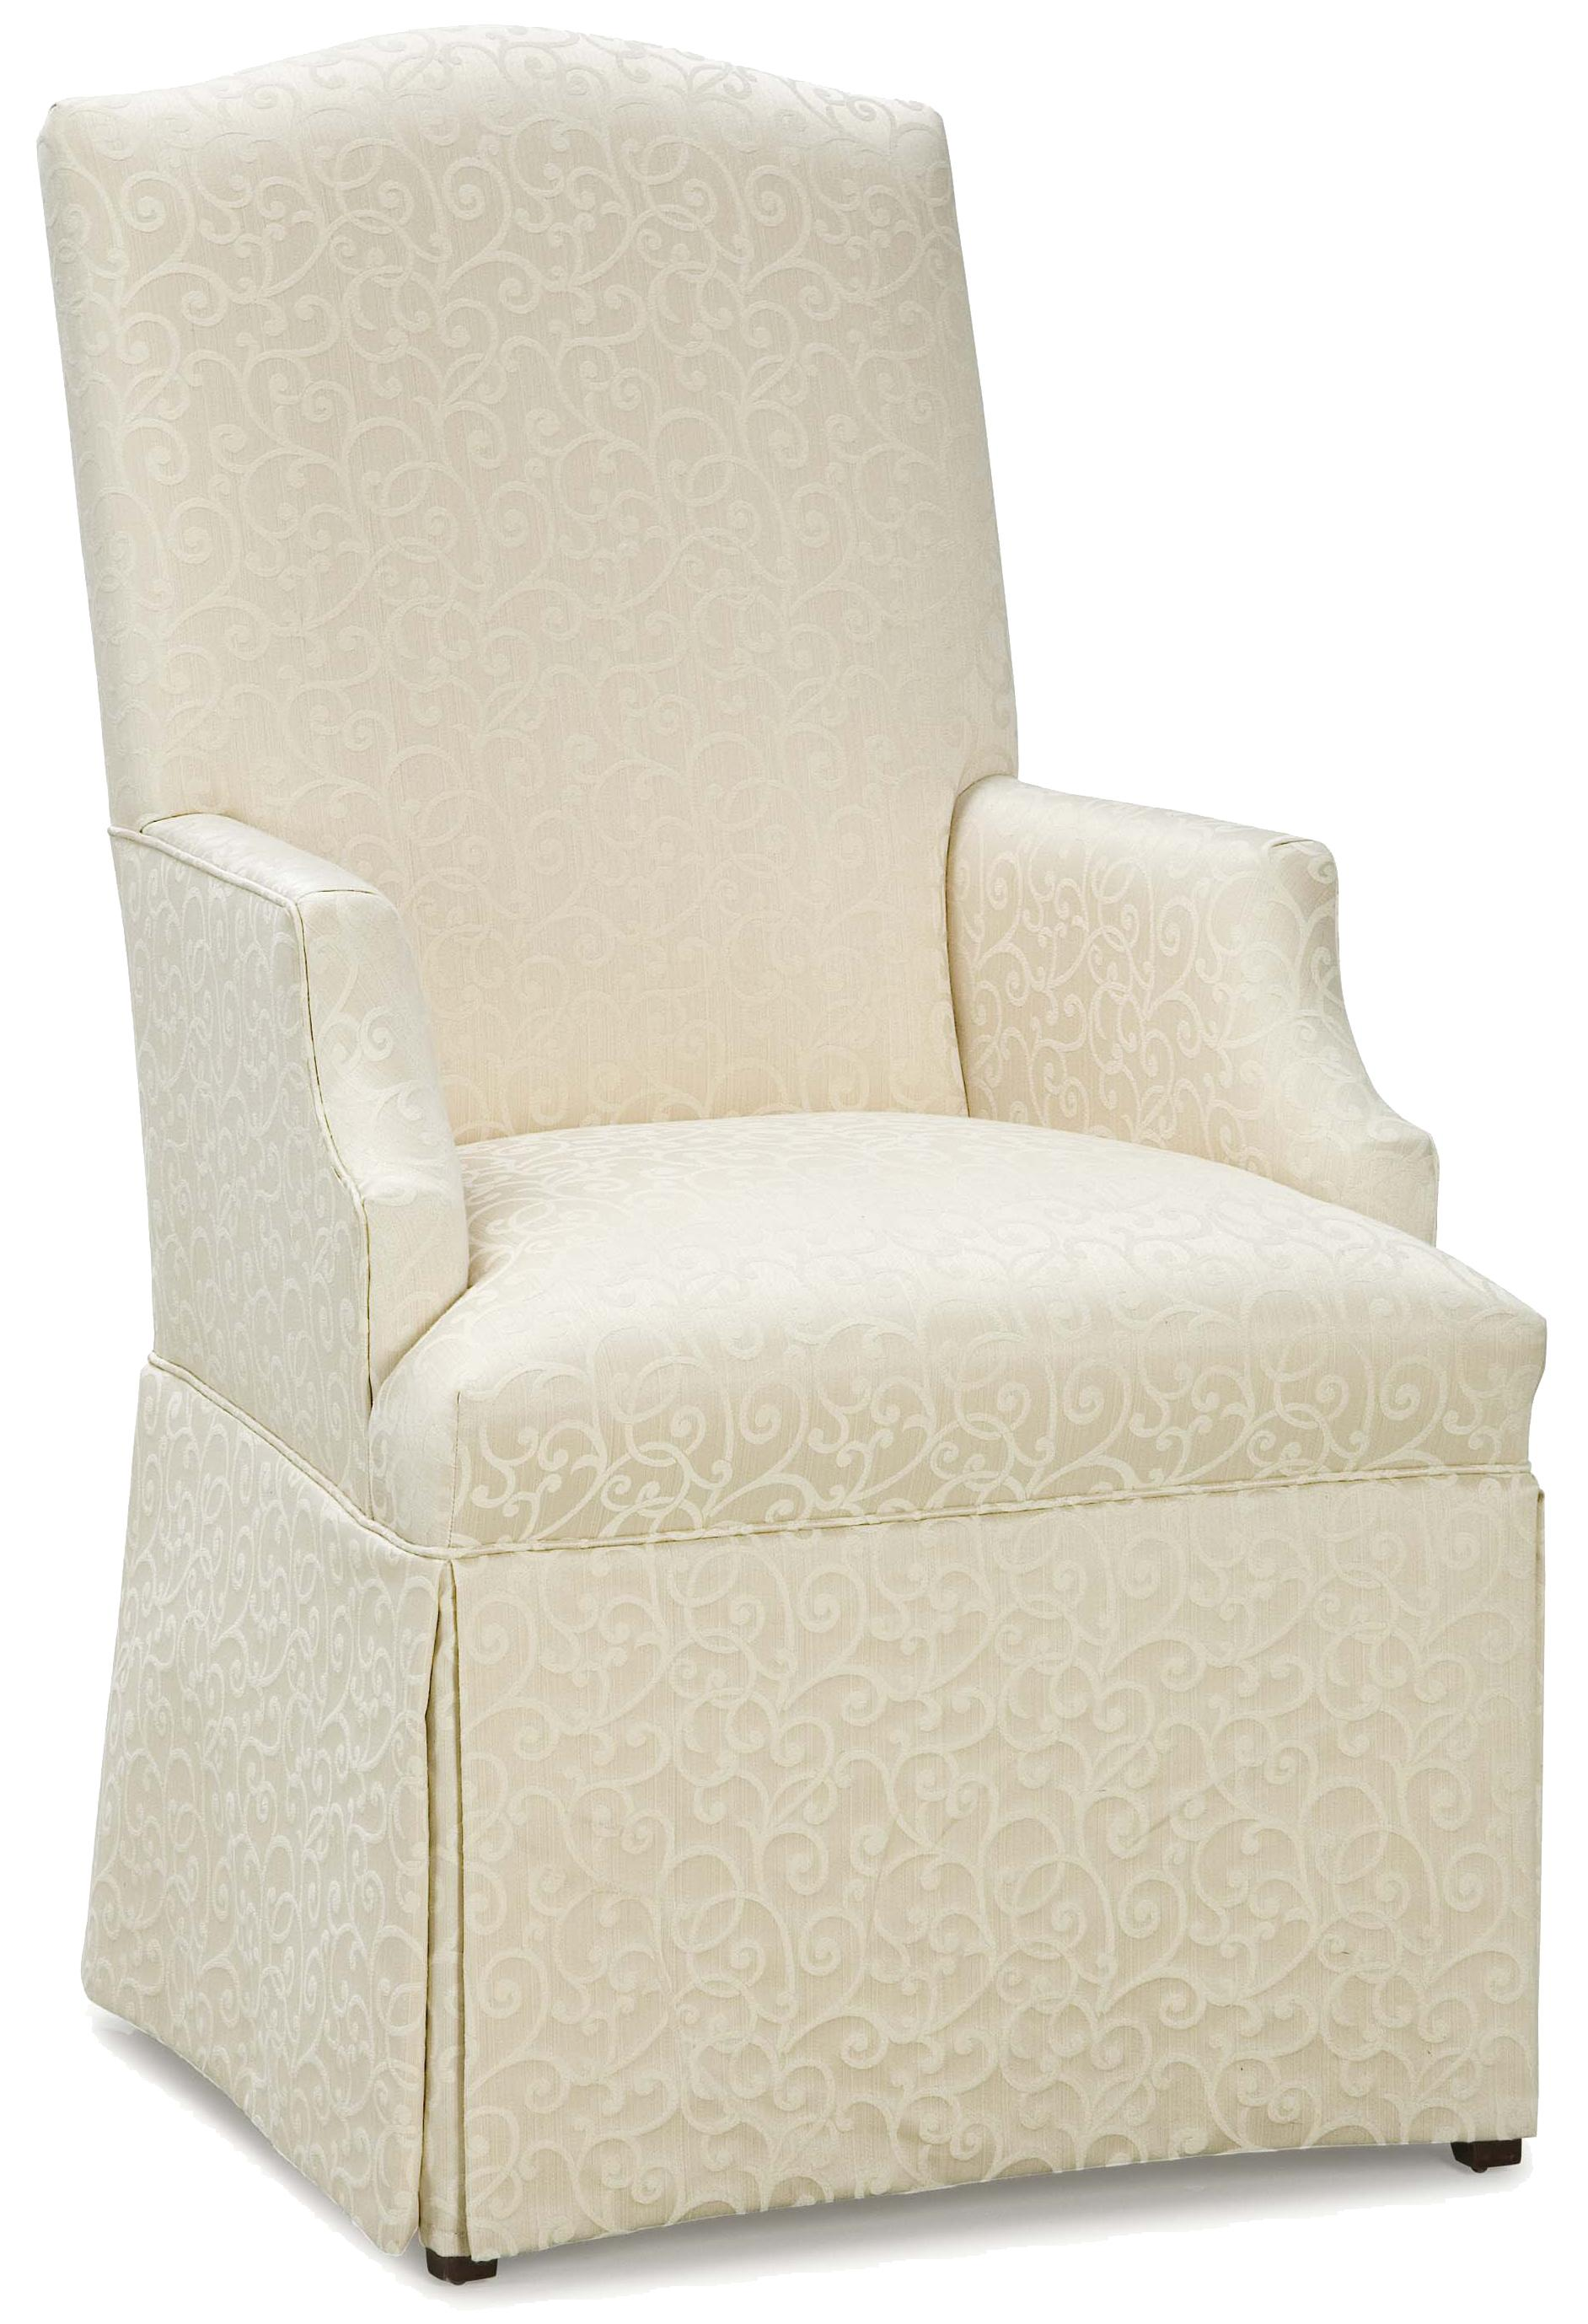 Fairfield Chairs Upholstered Arm Chair - Item Number: 6003-04